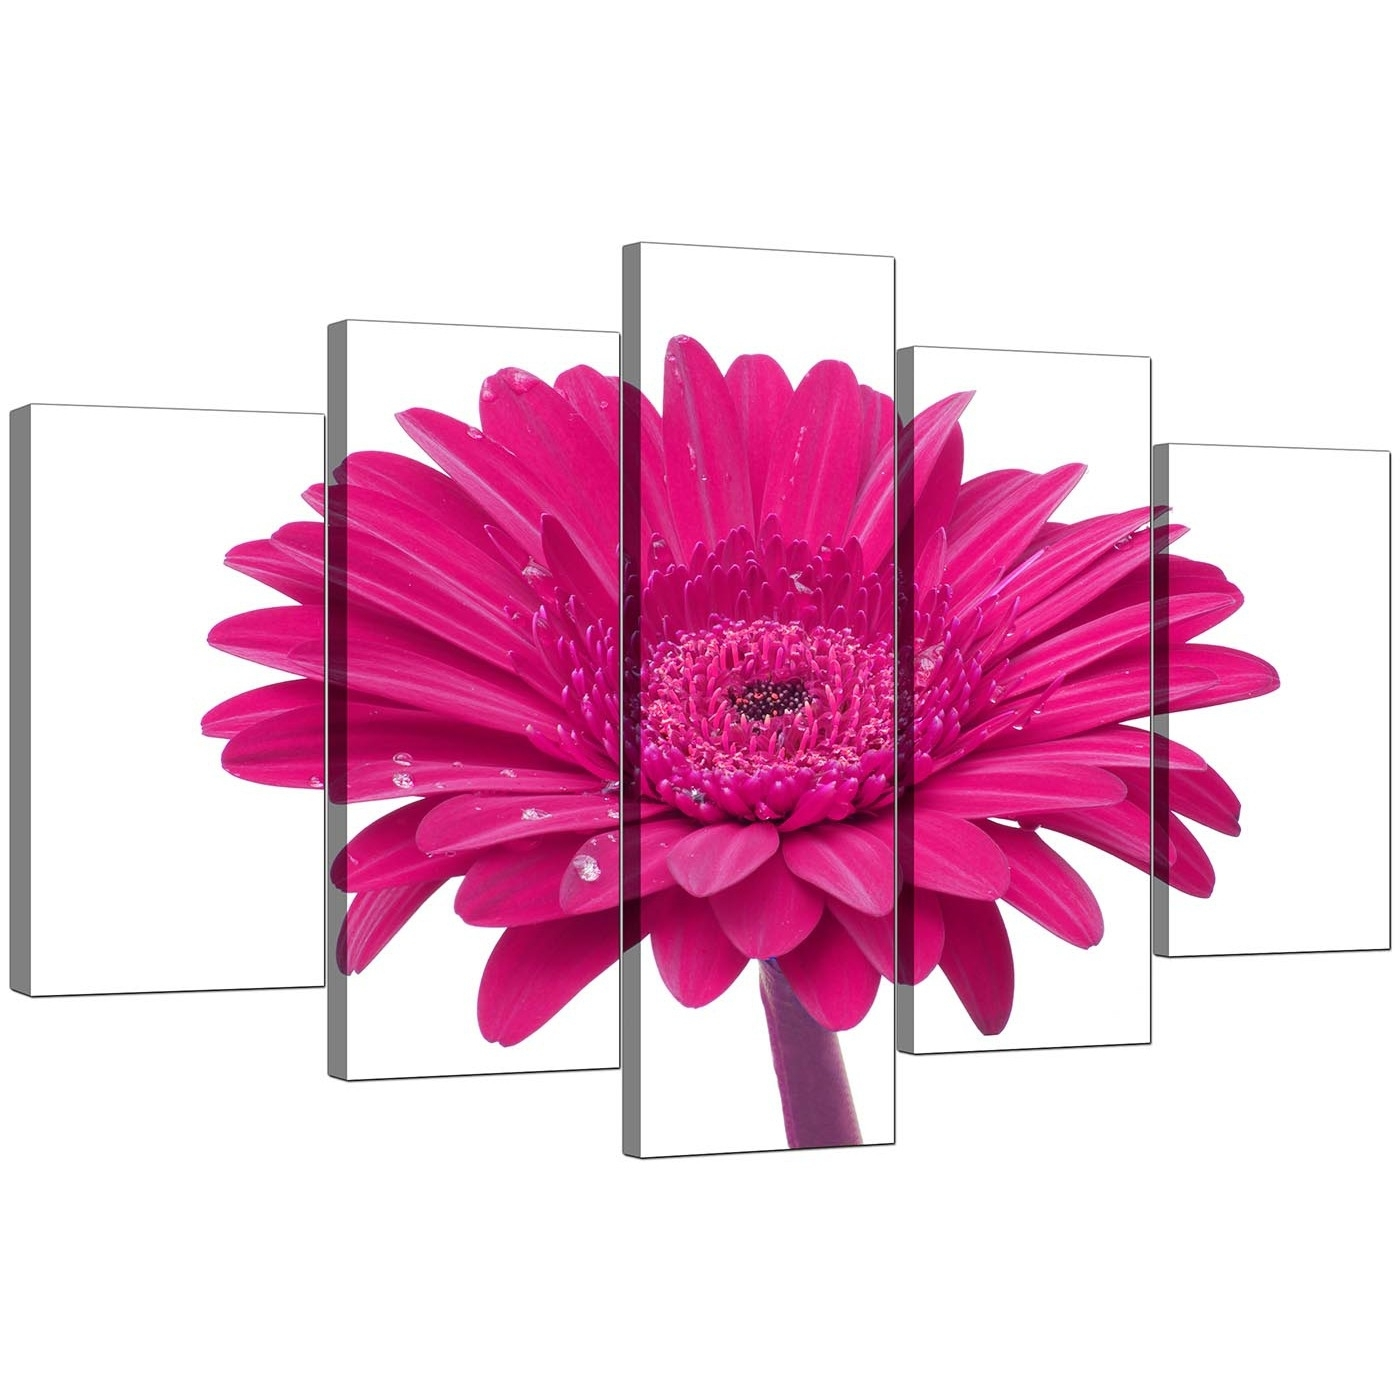 Extra Large Flower Canvas Wall Art 5 Piece In Pink In Pink Wall Art (Photo 8 of 20)